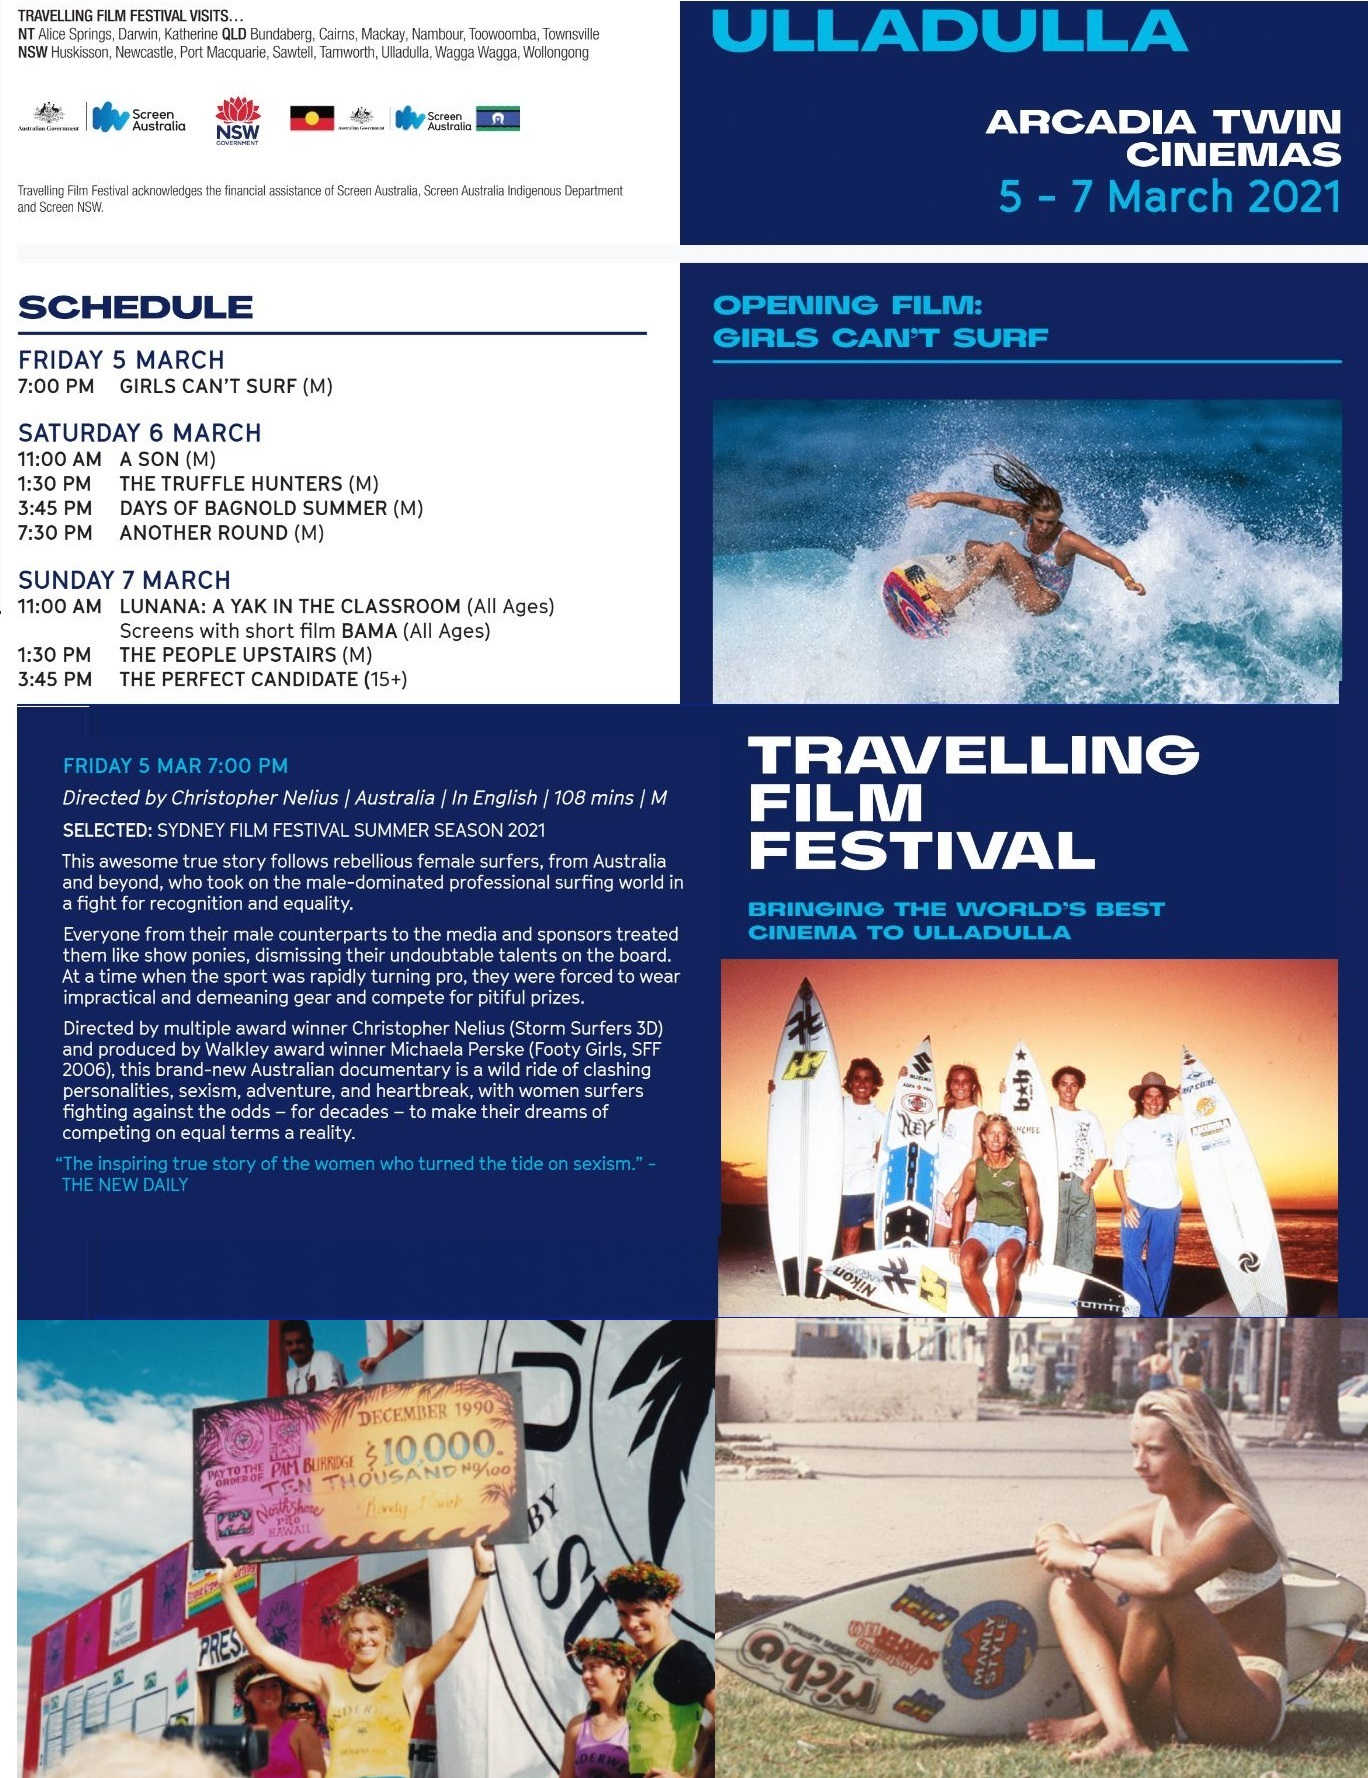 Travelling Film Festival Ulladulla,Travelling Film Festival,Ulladulla,Girls can't surf,Pam Burridge,Arcadia,Mollymook Beach Waterfront